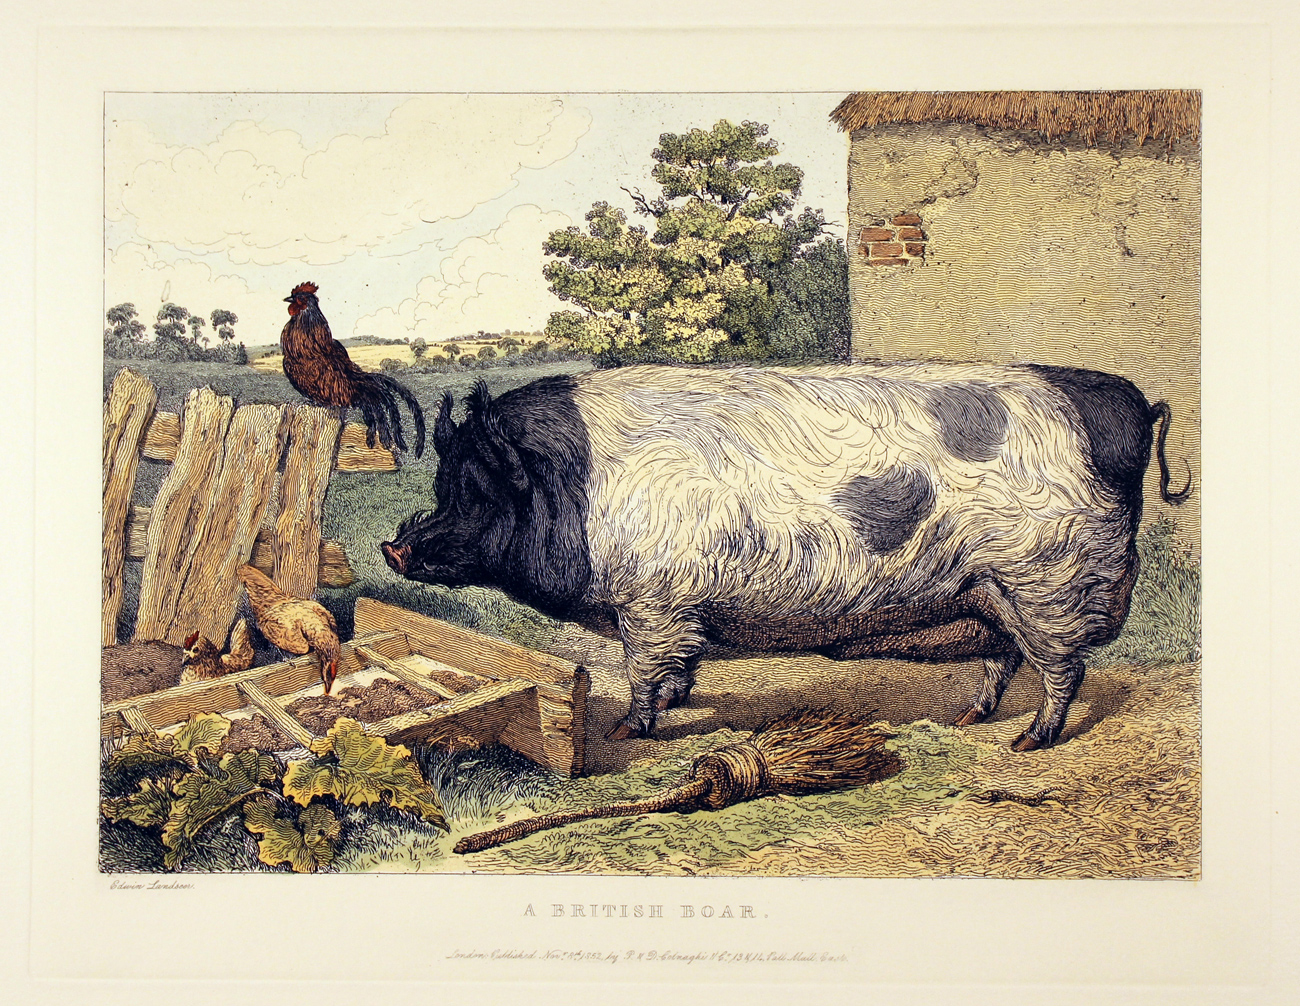 Engraving, Hand coloured restrike engraving, British Boar, click to enlarge